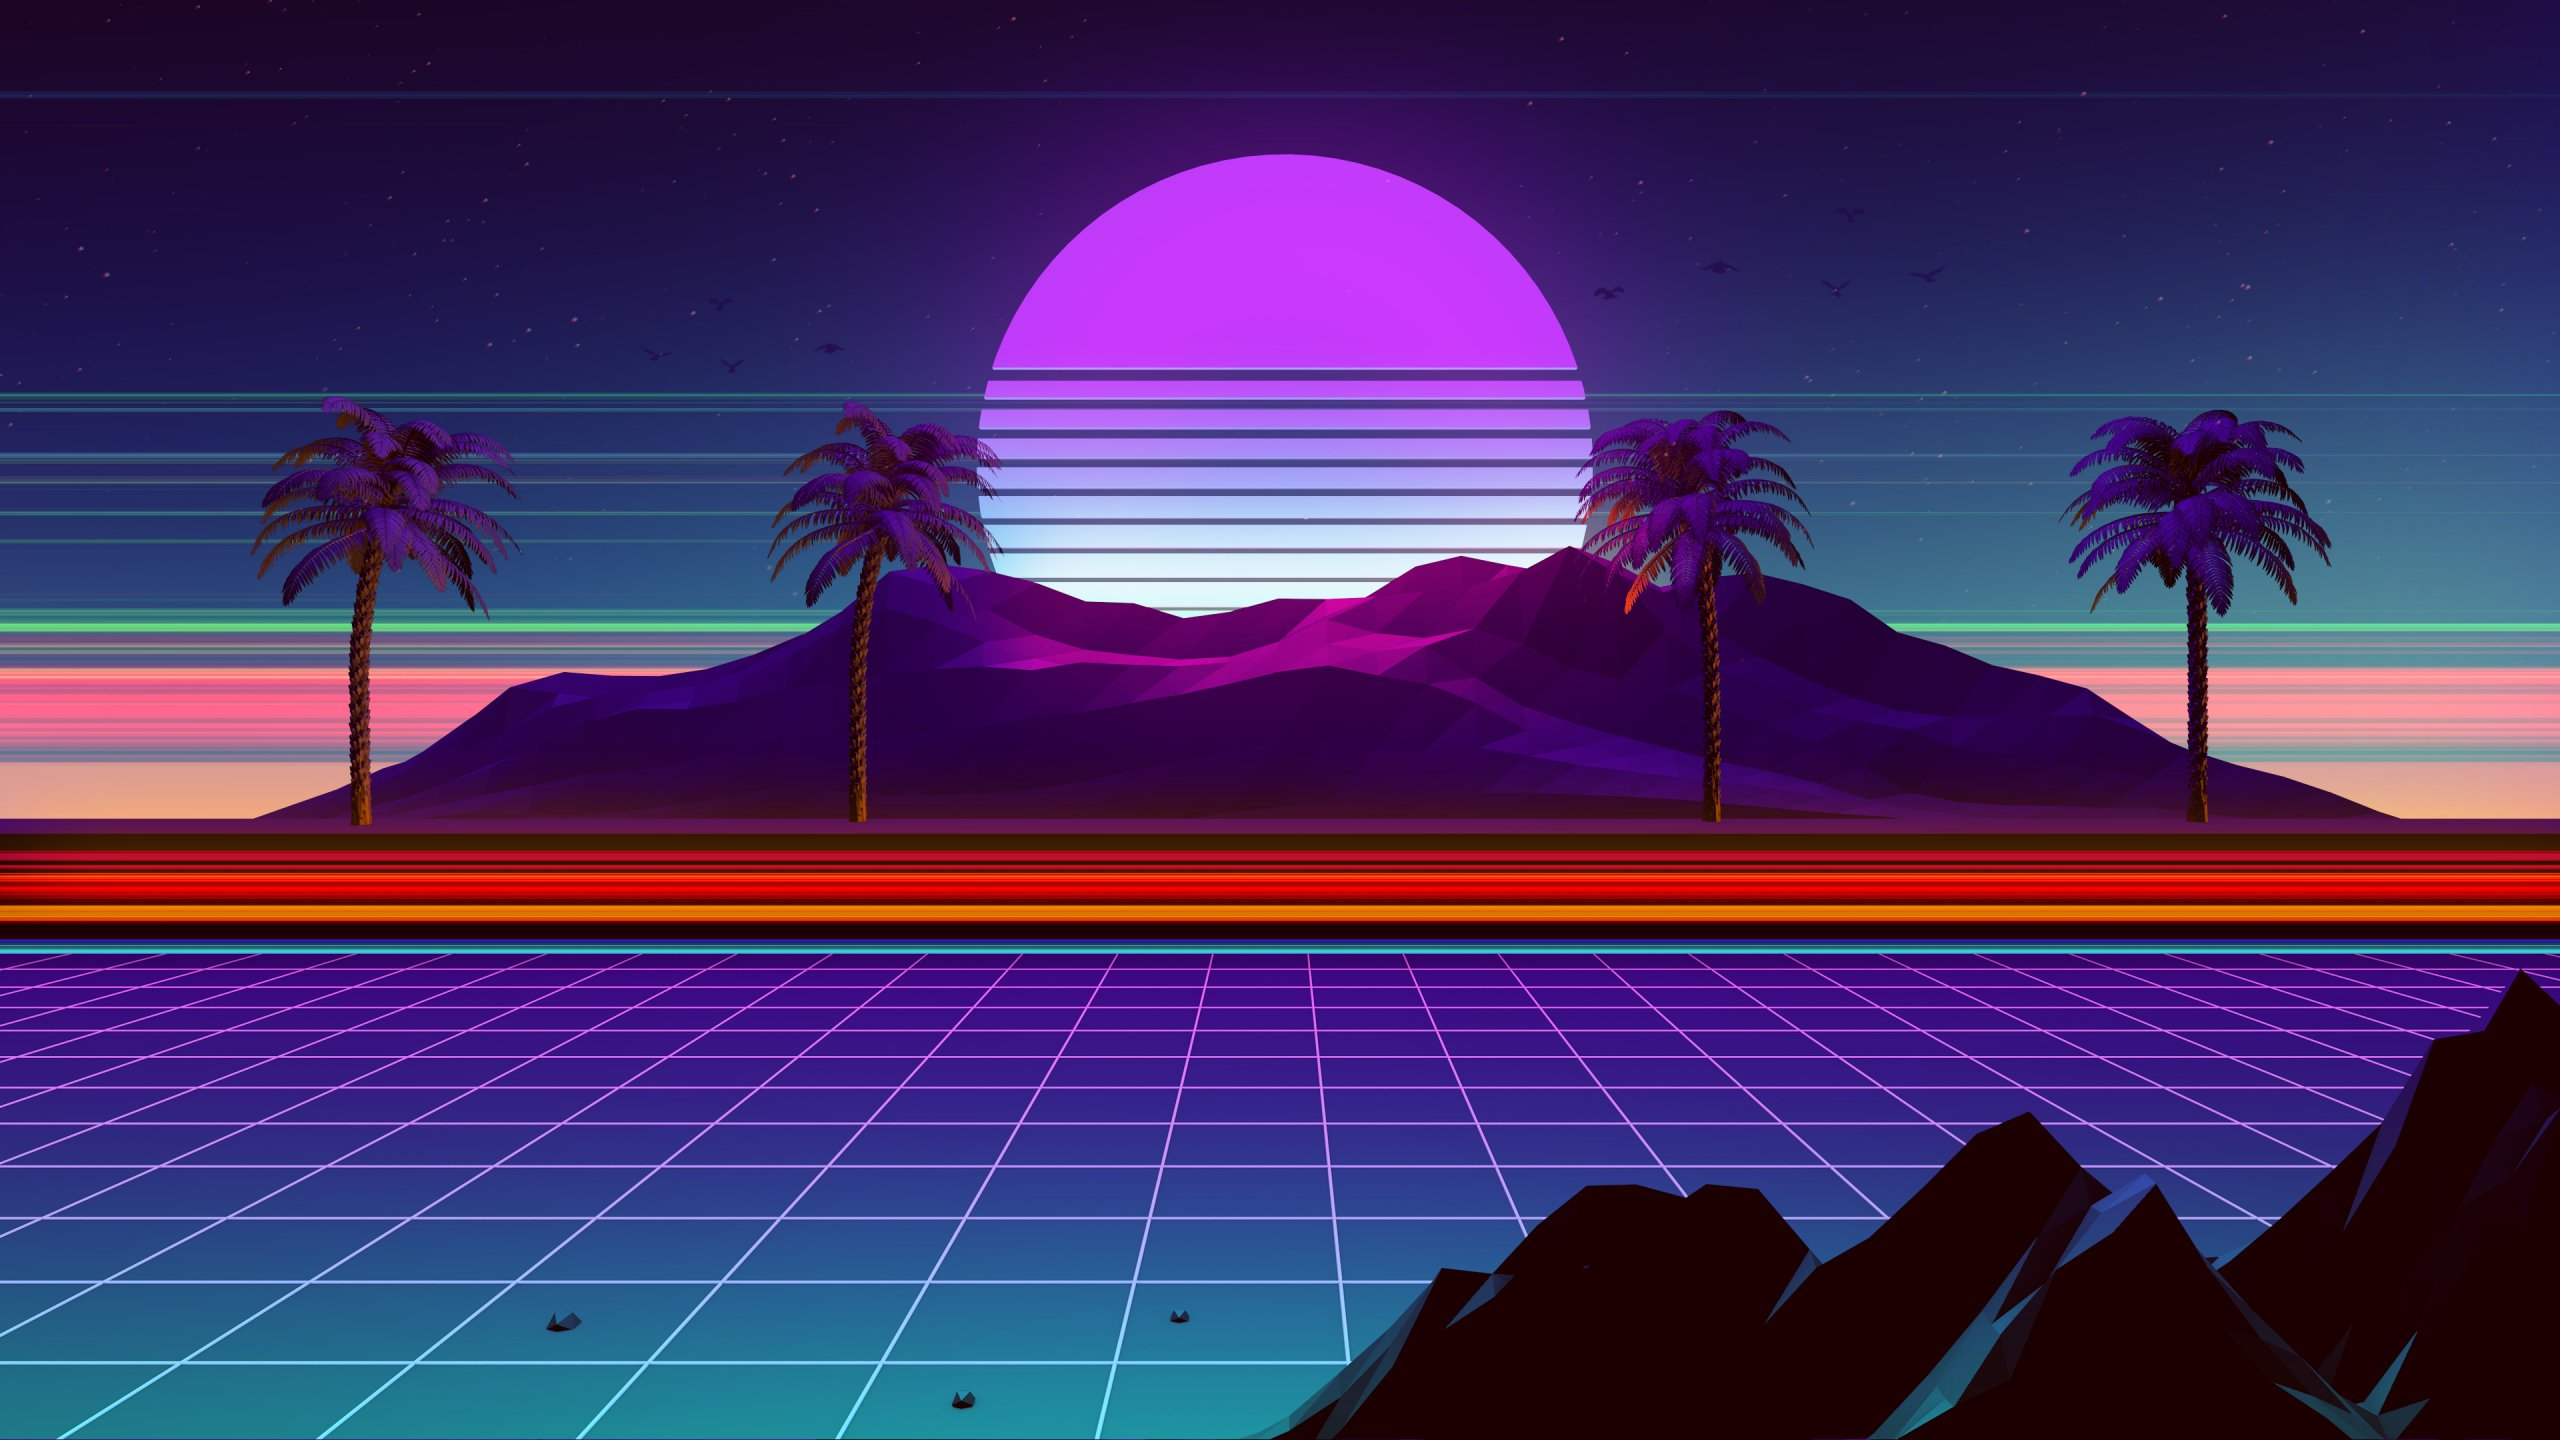 2560x1440 Synthwave And Retrowave 1440P Resolution Wallpaper HD 2560x1440